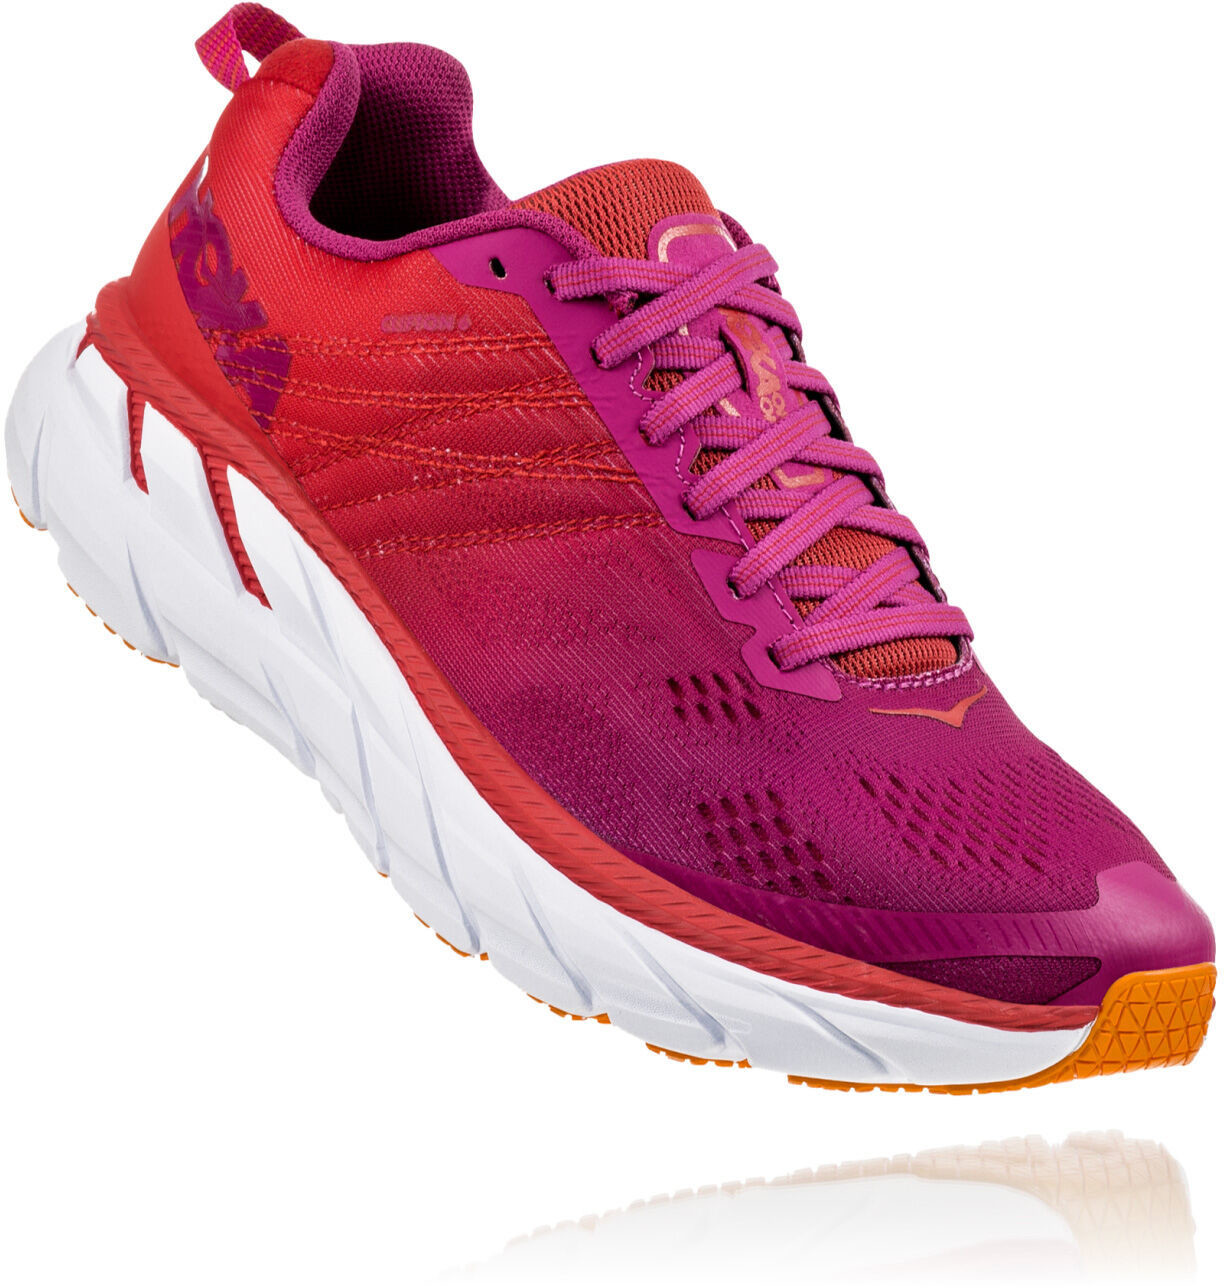 Hoka One One Clifton 6 Laufschuhe Damen poppy red cactus flower1920x1920 - Innovative løbesko med høje såler